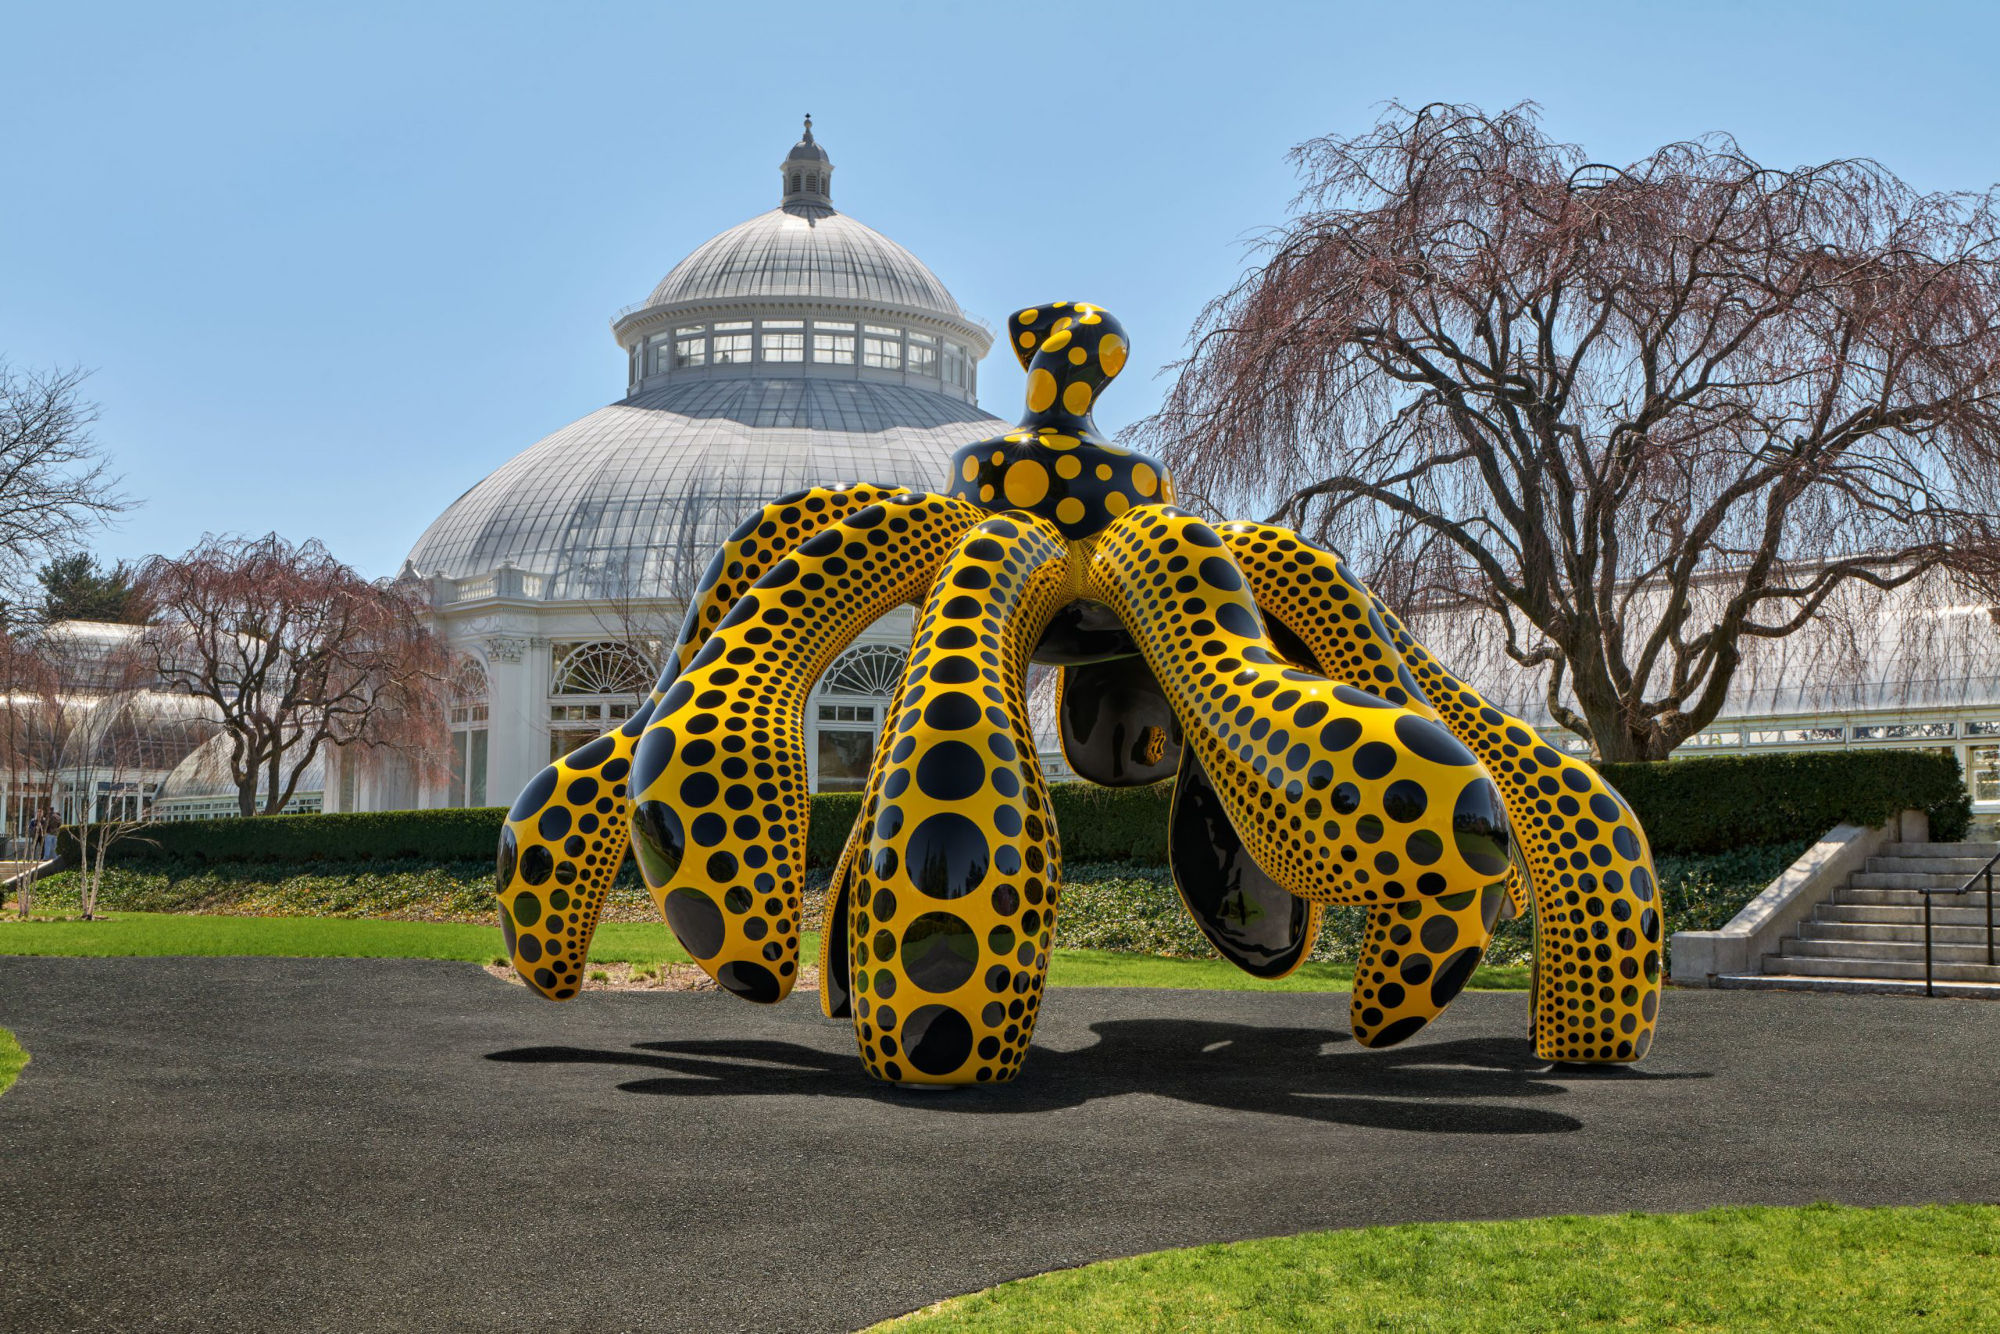 Yayoi Kusama's new show bursts into life at The New York Botanical Garden